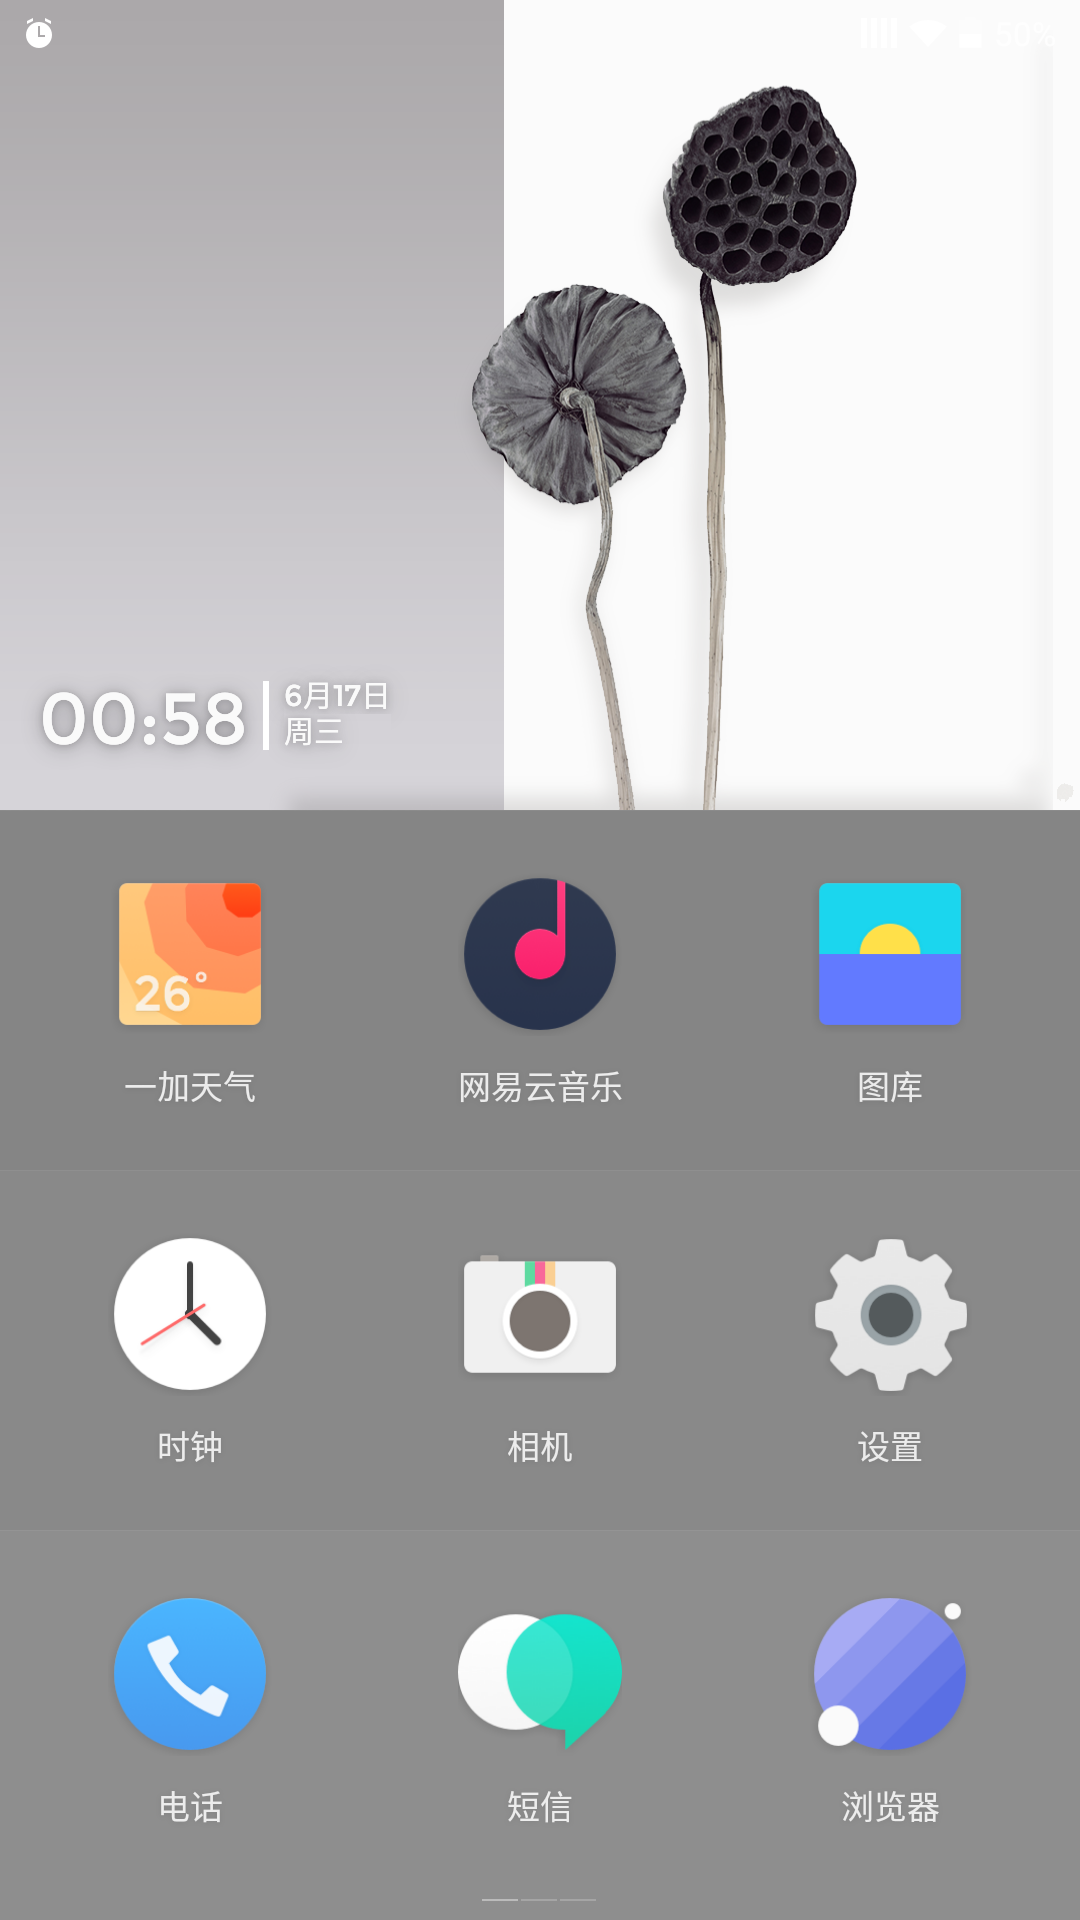 Screenshot_2015-06-17-00-58-04.png